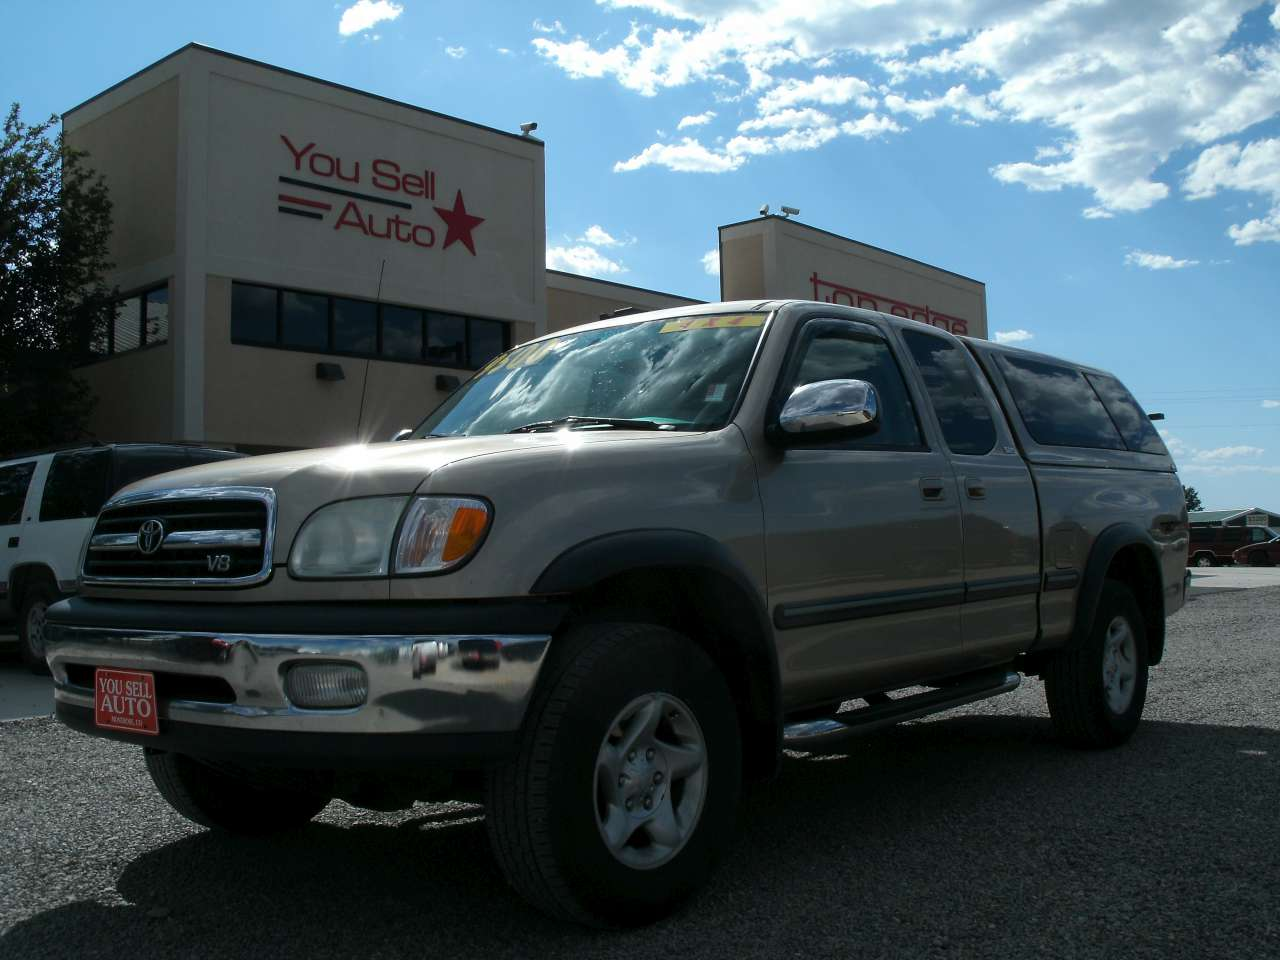 2008 toyota tundra crewmax 4x4 towing capacity. Black Bedroom Furniture Sets. Home Design Ideas